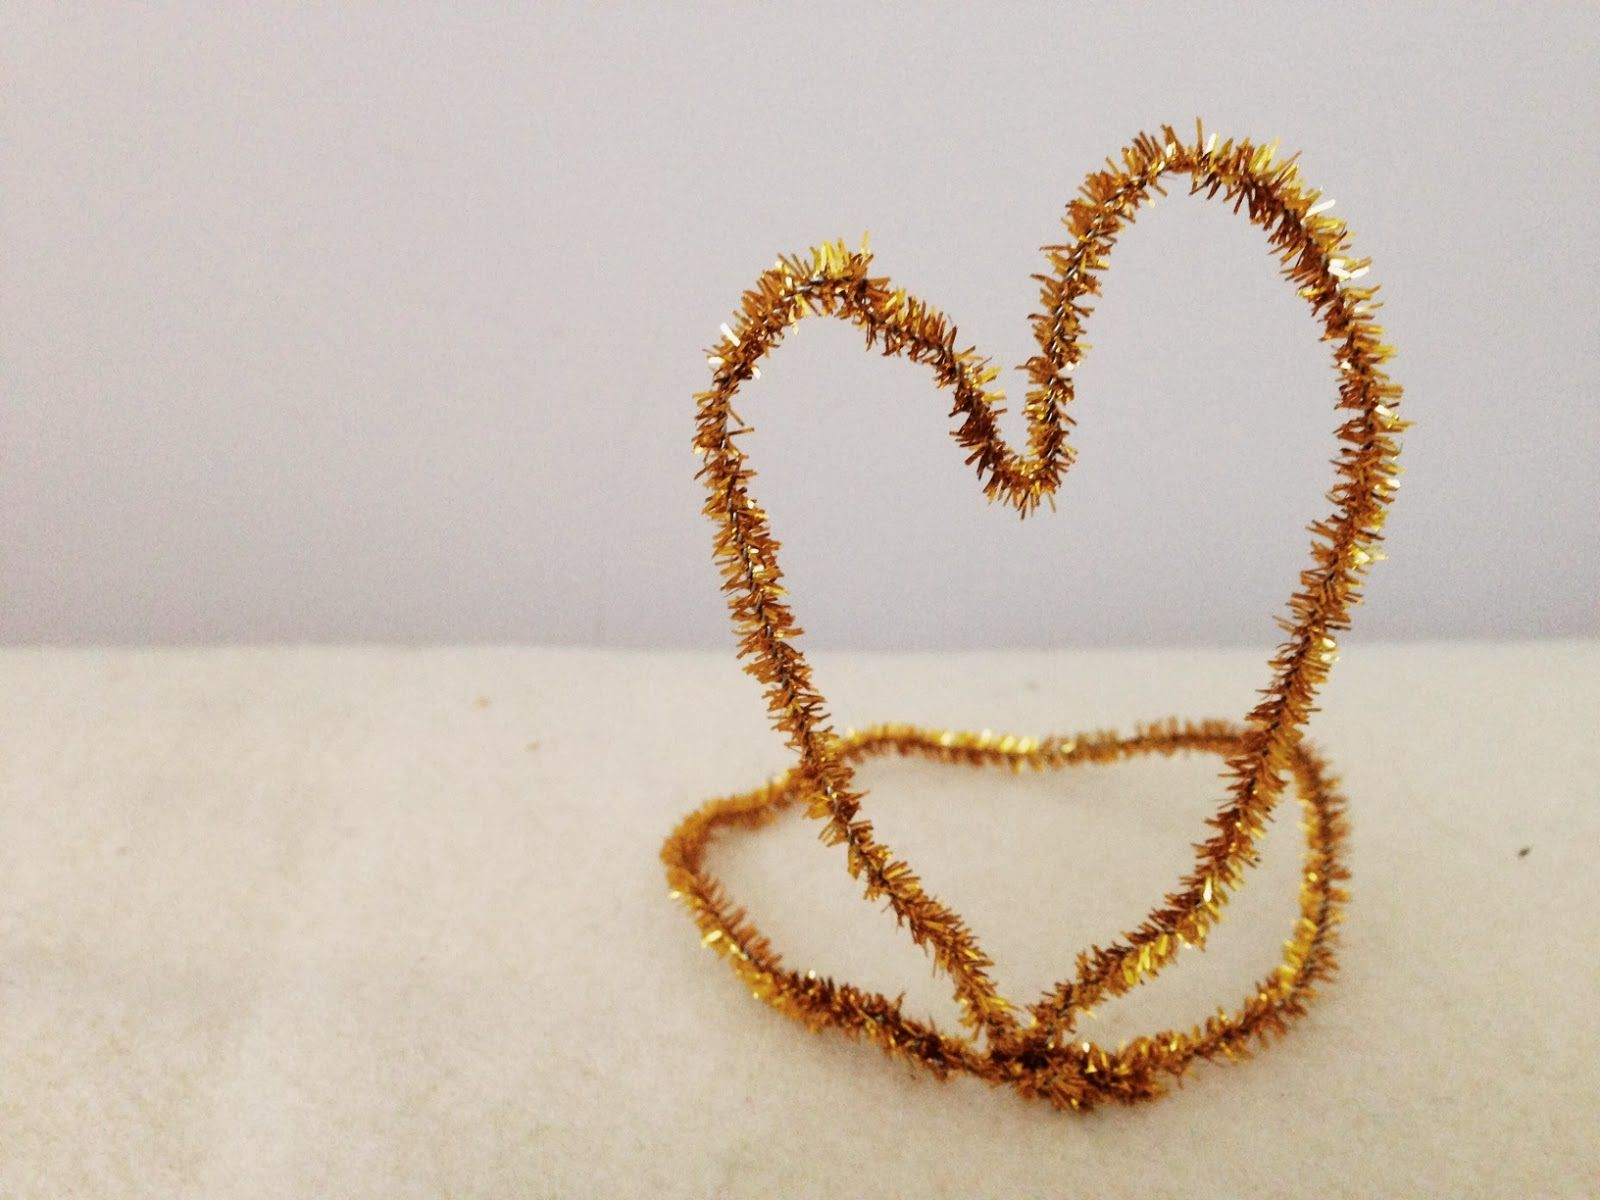 Gold Crowns http://lovelylittledays.blogspot.ca/2014/01/pipe-cleaner-crowns.html